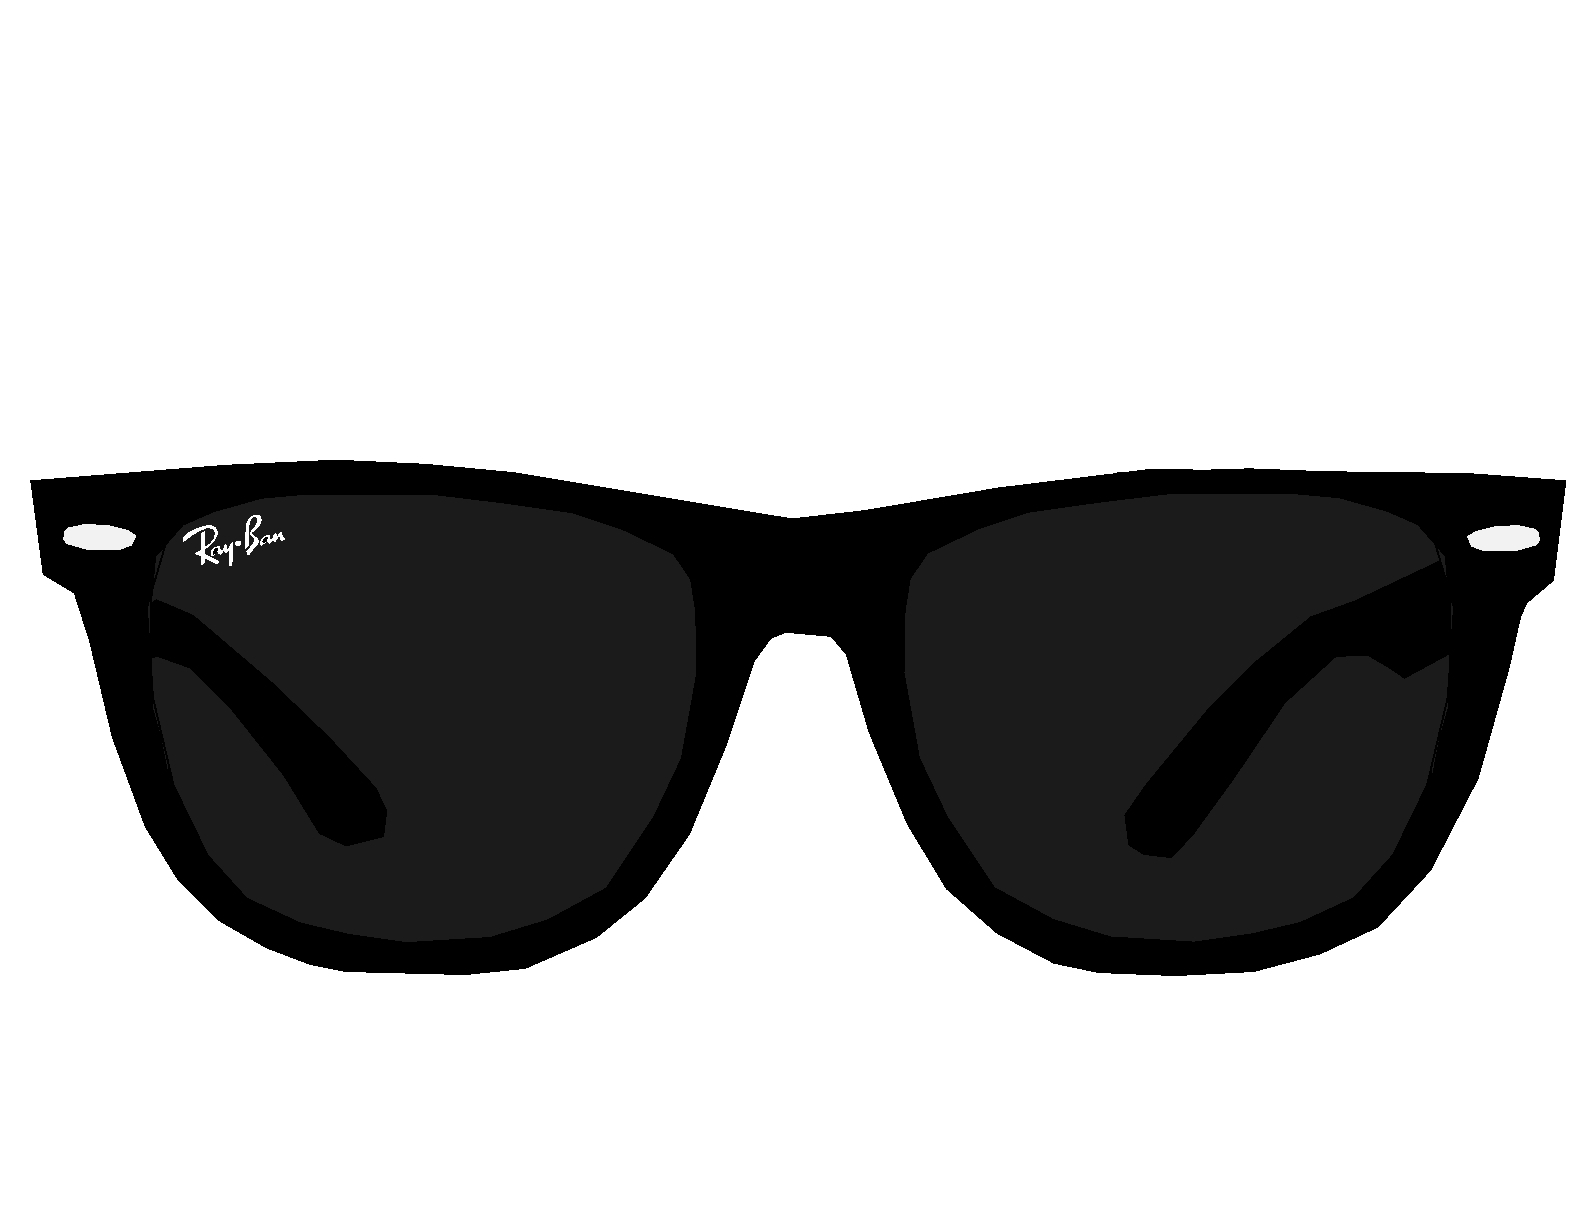 1584x1224 sunglasses drawing sunglasses for free download